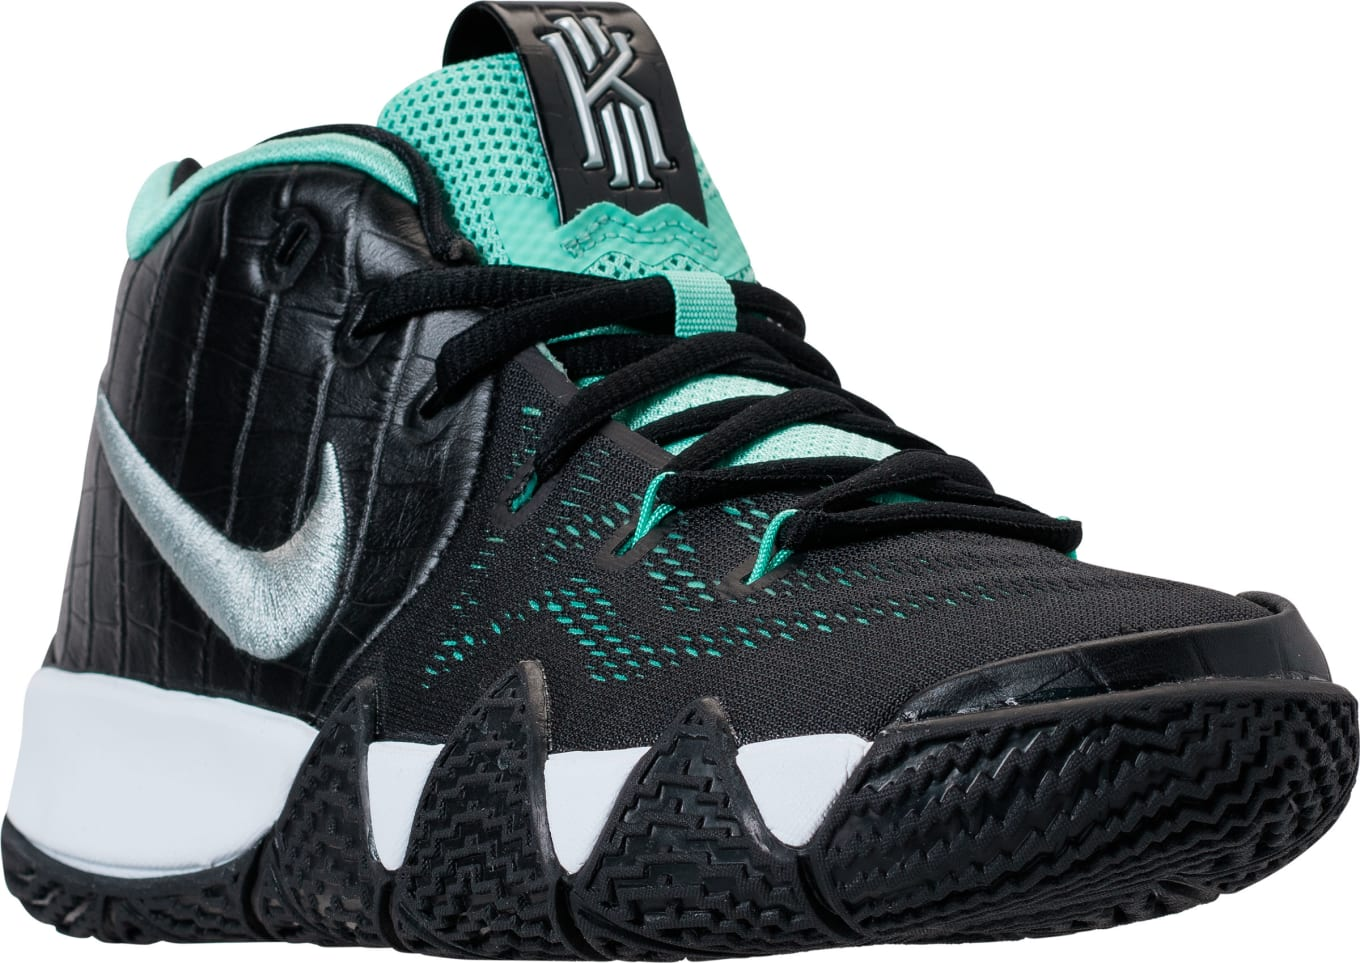 289b71e8432a31 Nike Kyrie 4 GS Tiffany Tropical Twist Release Date AA2897-390 ...